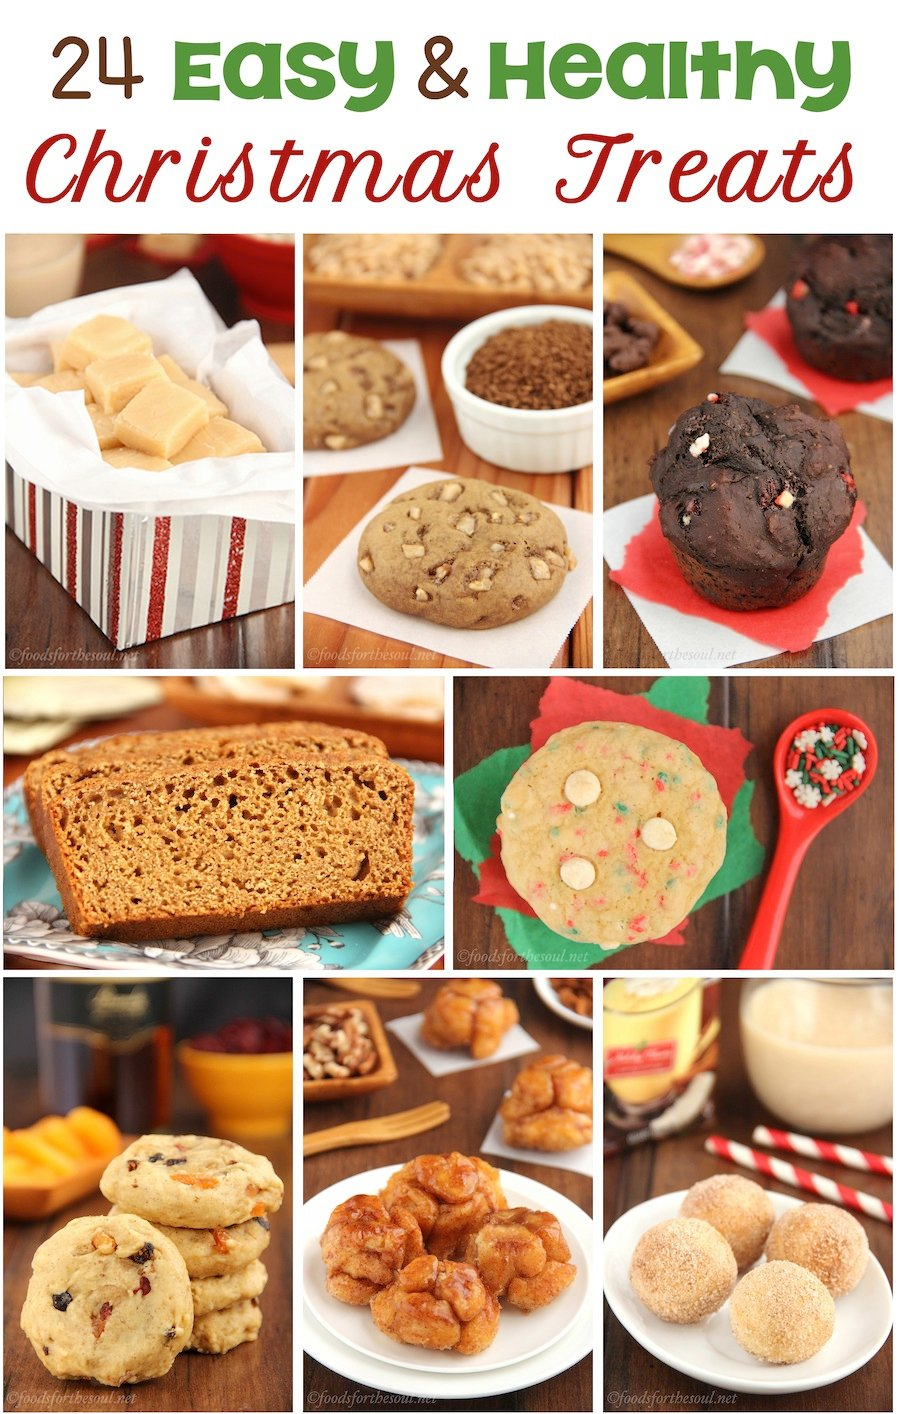 24 easy healthy christmas treats amys healthy baking 24 easy healthy christmas treats perfect for last minute breakfasts baking forumfinder Image collections